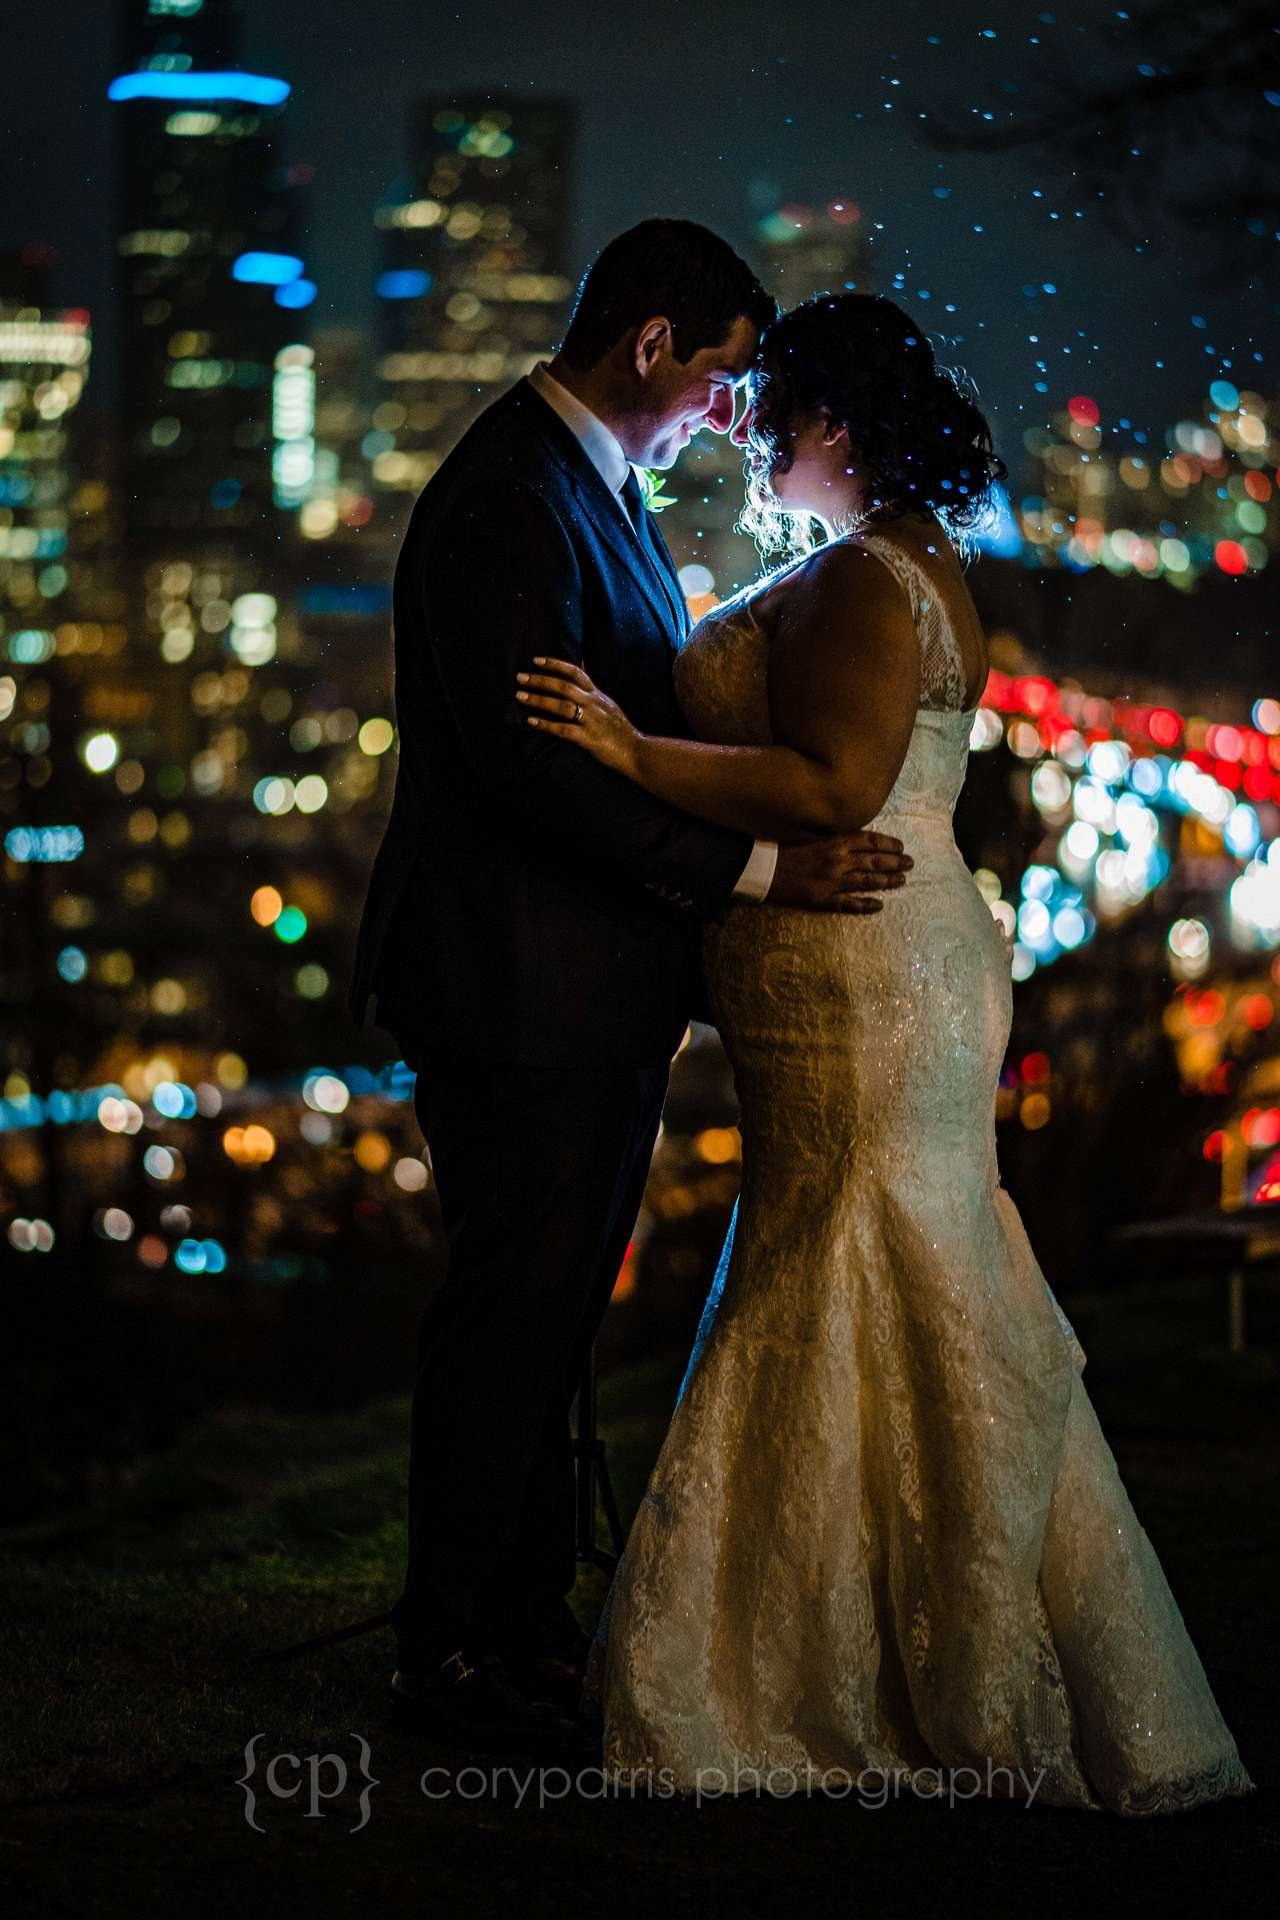 Hillary and Blake venturing outside in the rain for portrait with the amazing view of Seattle at night from Jose Rizal Park. Very cool!